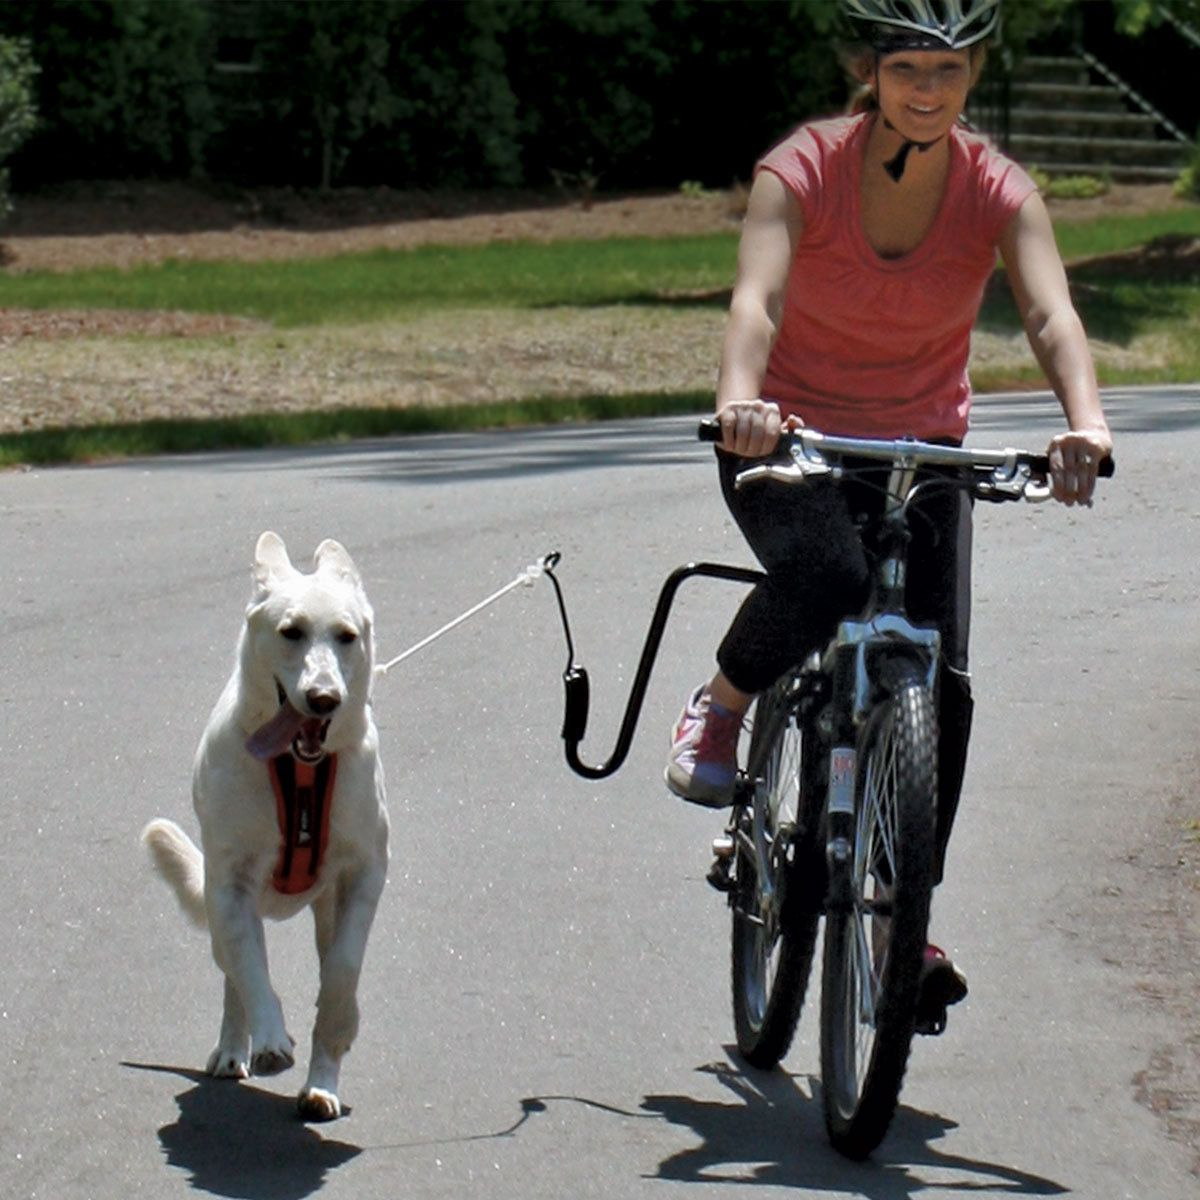 Bike Dog Excerciser: Designed to clamp to the frame or the seat stem, it also features an arm with a steel spring that absorbs up to 90% of the force of your pooch's tugs. You keep your bal